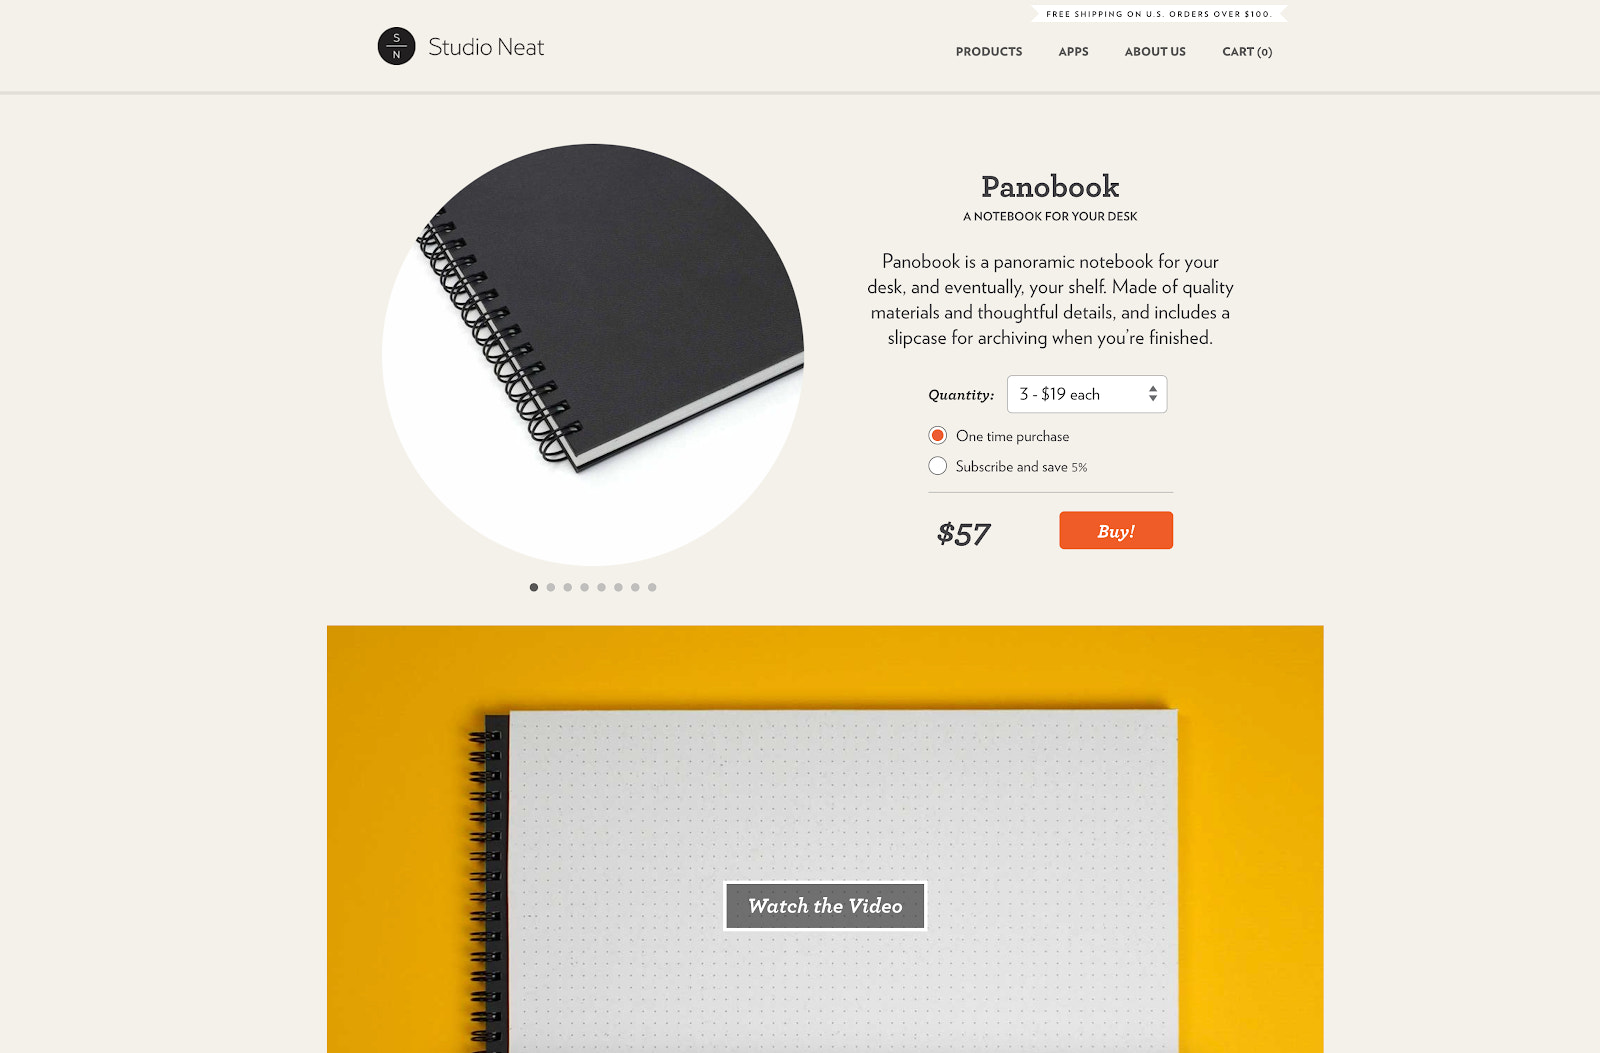 Studio neat product page